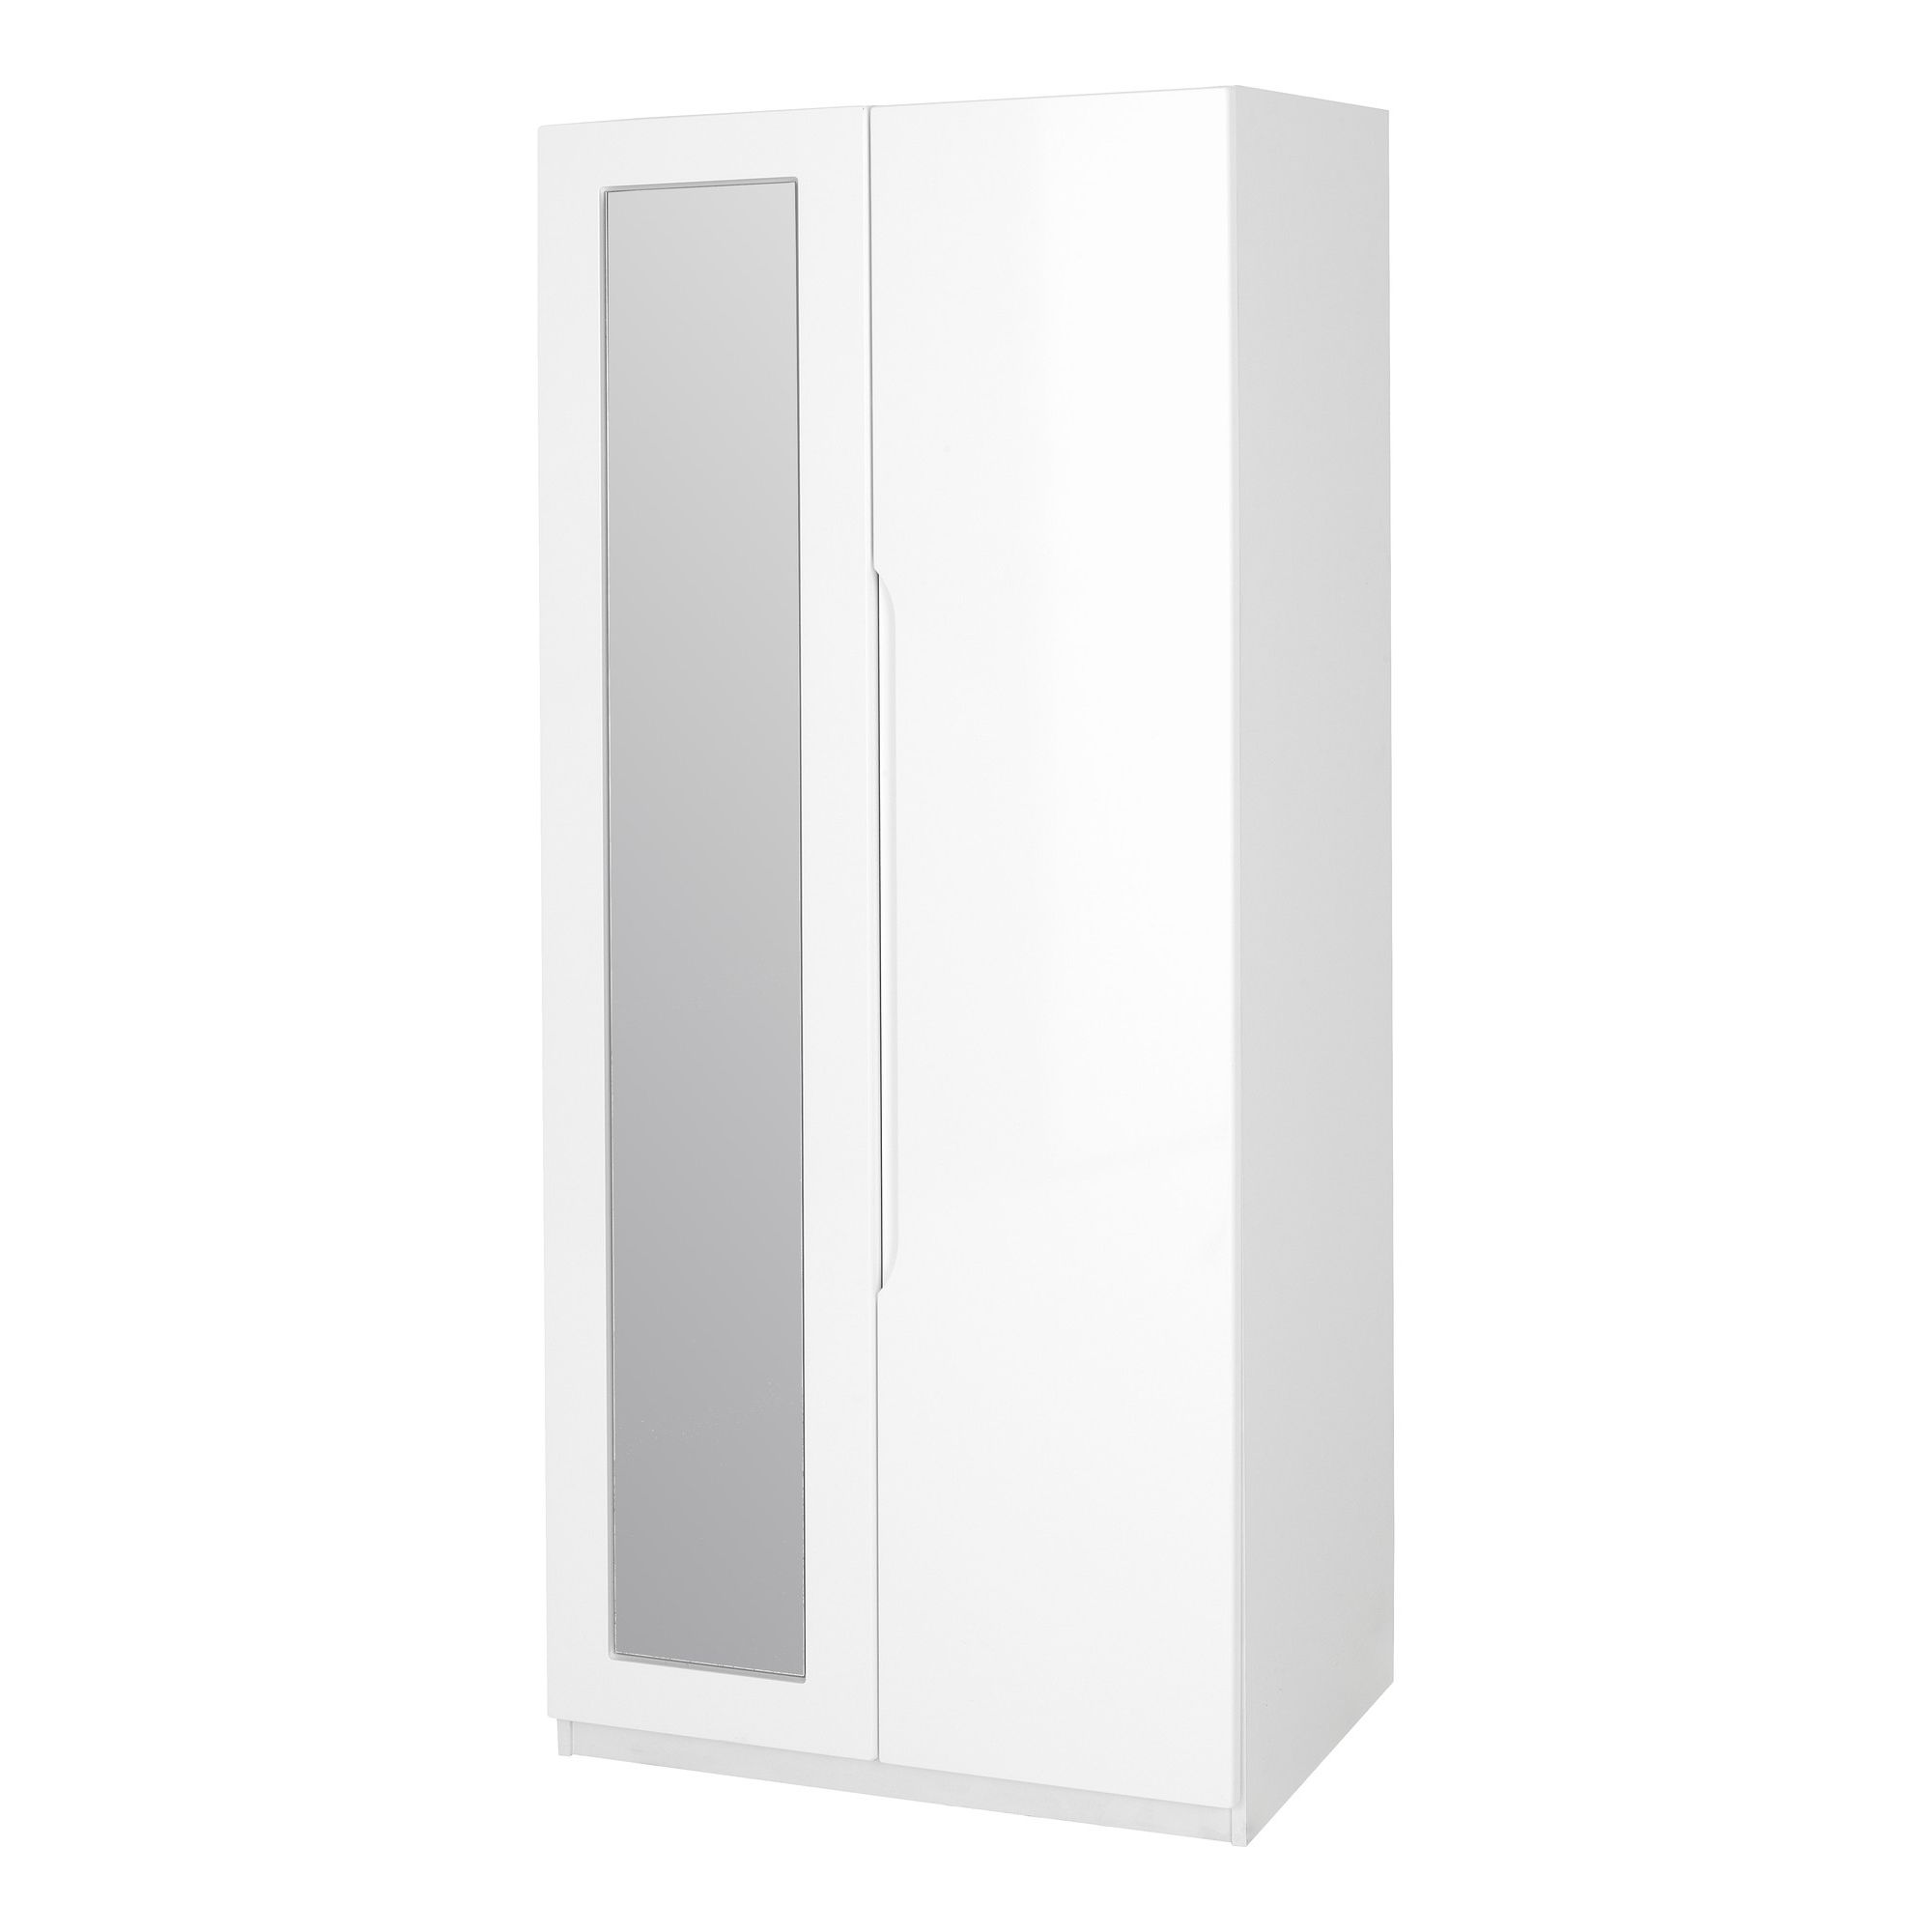 Alto Furniture Visualise Alpine Wardrobe with Mirror in High Gloss White at Tesco Direct